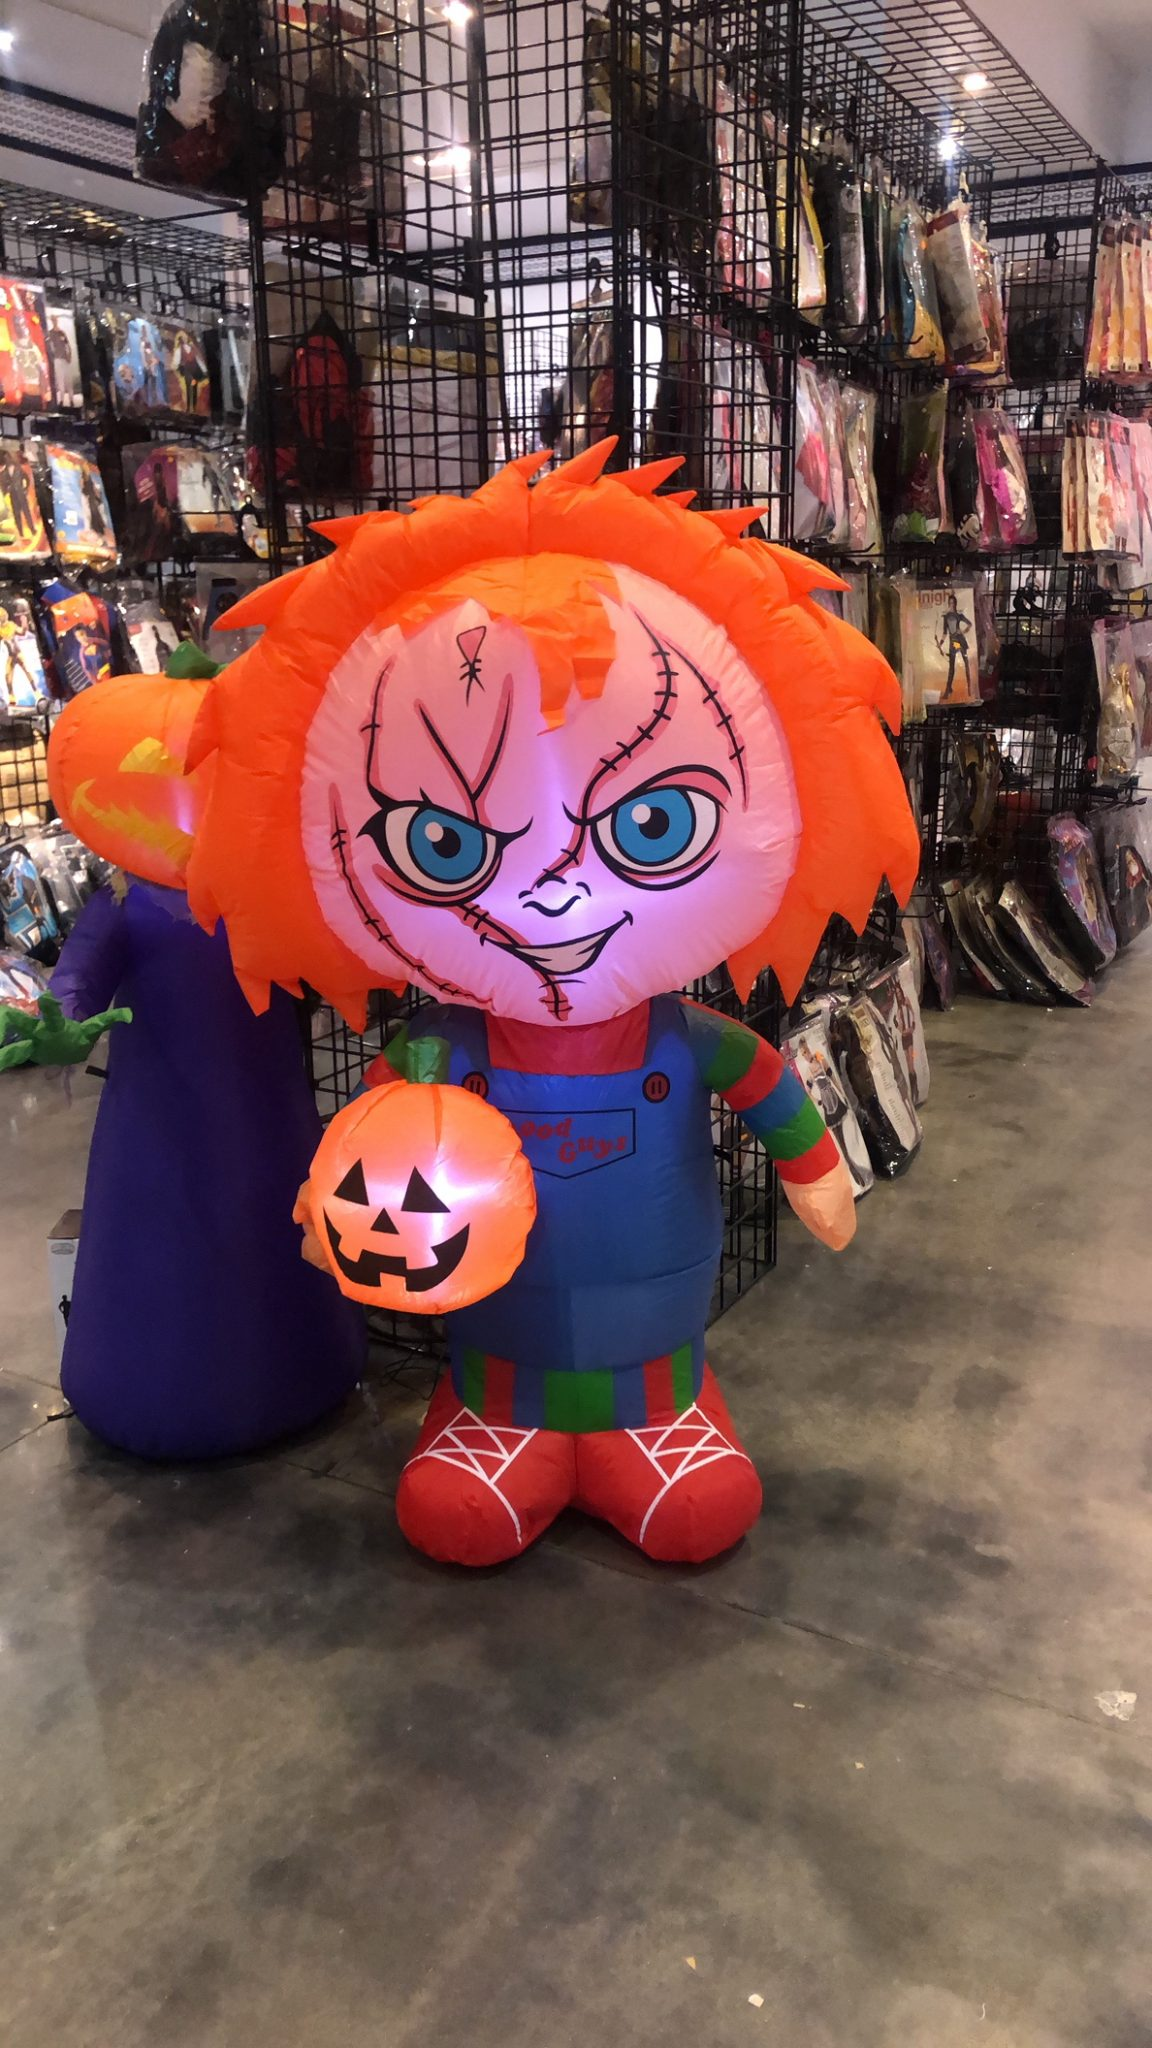 Halloween Costumes 07726.Halloween Wholesalers Tries To Bring Sense Of Normalcy To This Year S Halloween Centraljersey Com